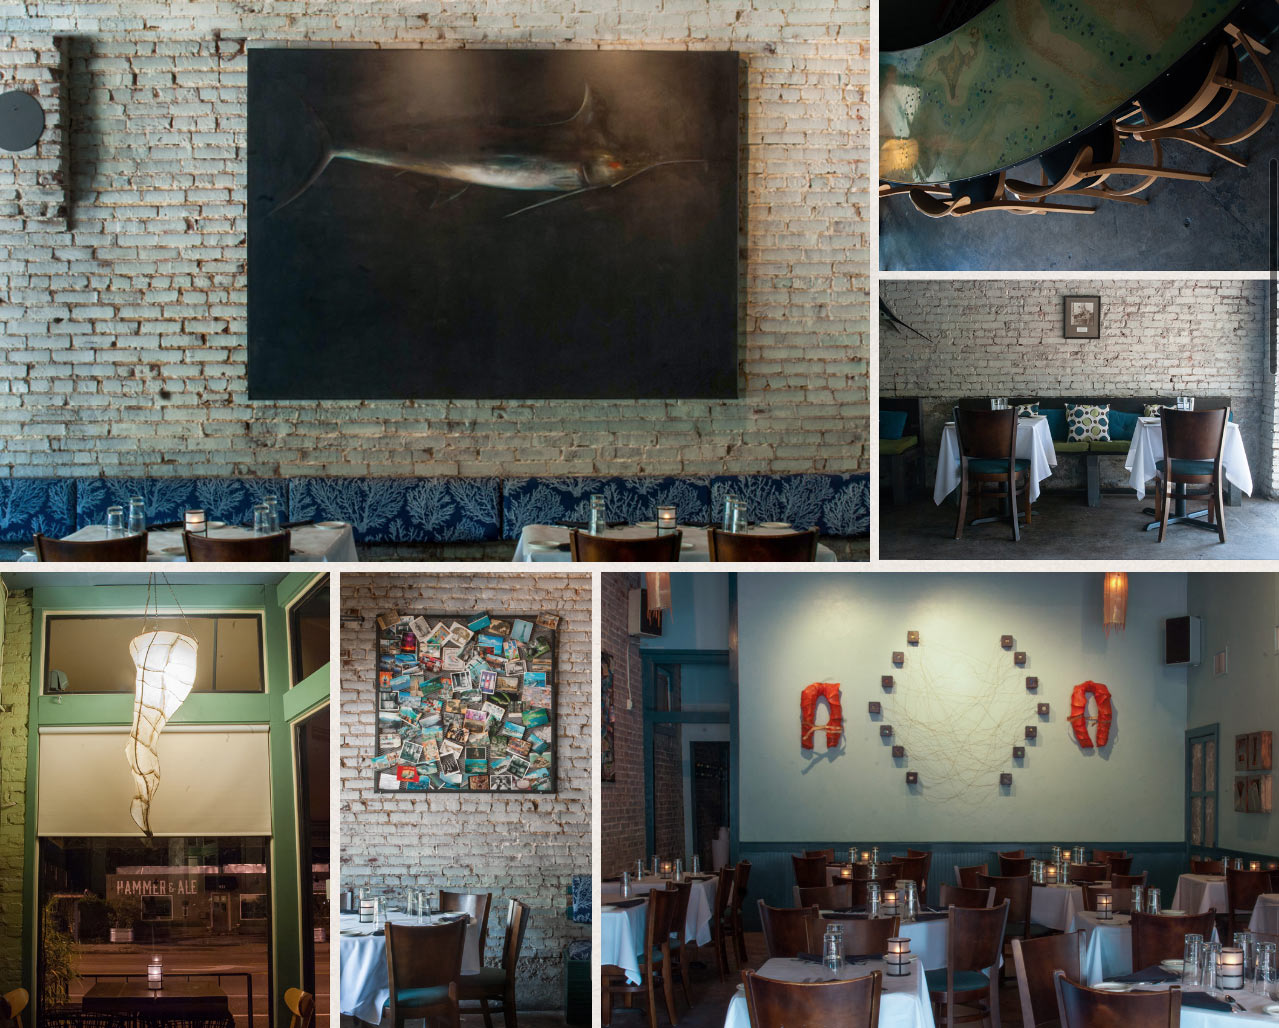 Tsunami Restaurant Photography - By Max Malcolms